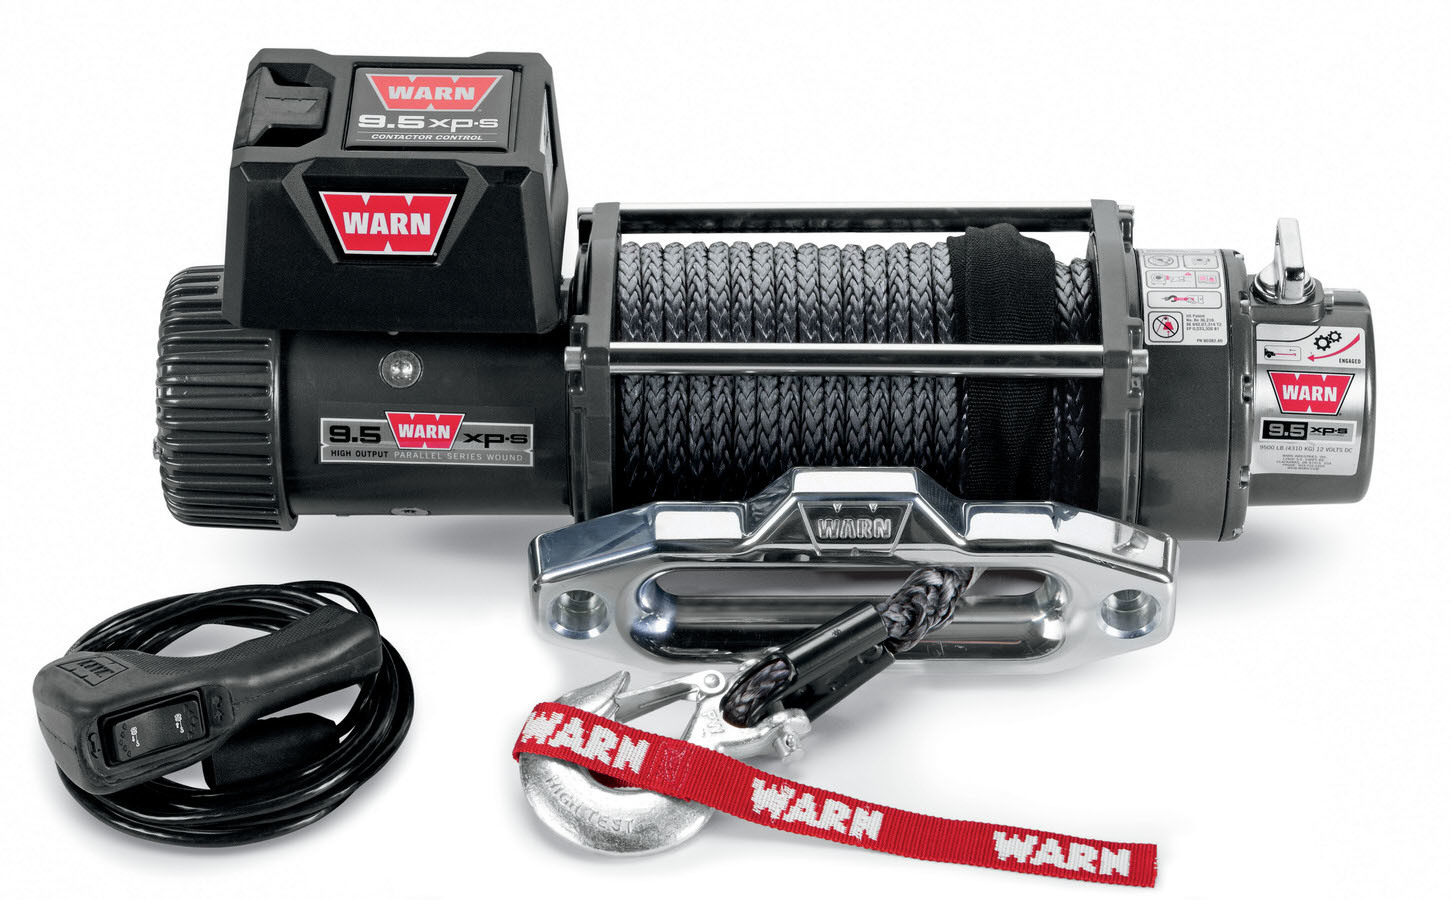 Warn 87310 Winch, 9.5xp-S, 9500 lb Capacity, Hawse Fairlead, 12 ft Remote, 5/16 in x 100 ft Synthetic Rope, 12V, Kit